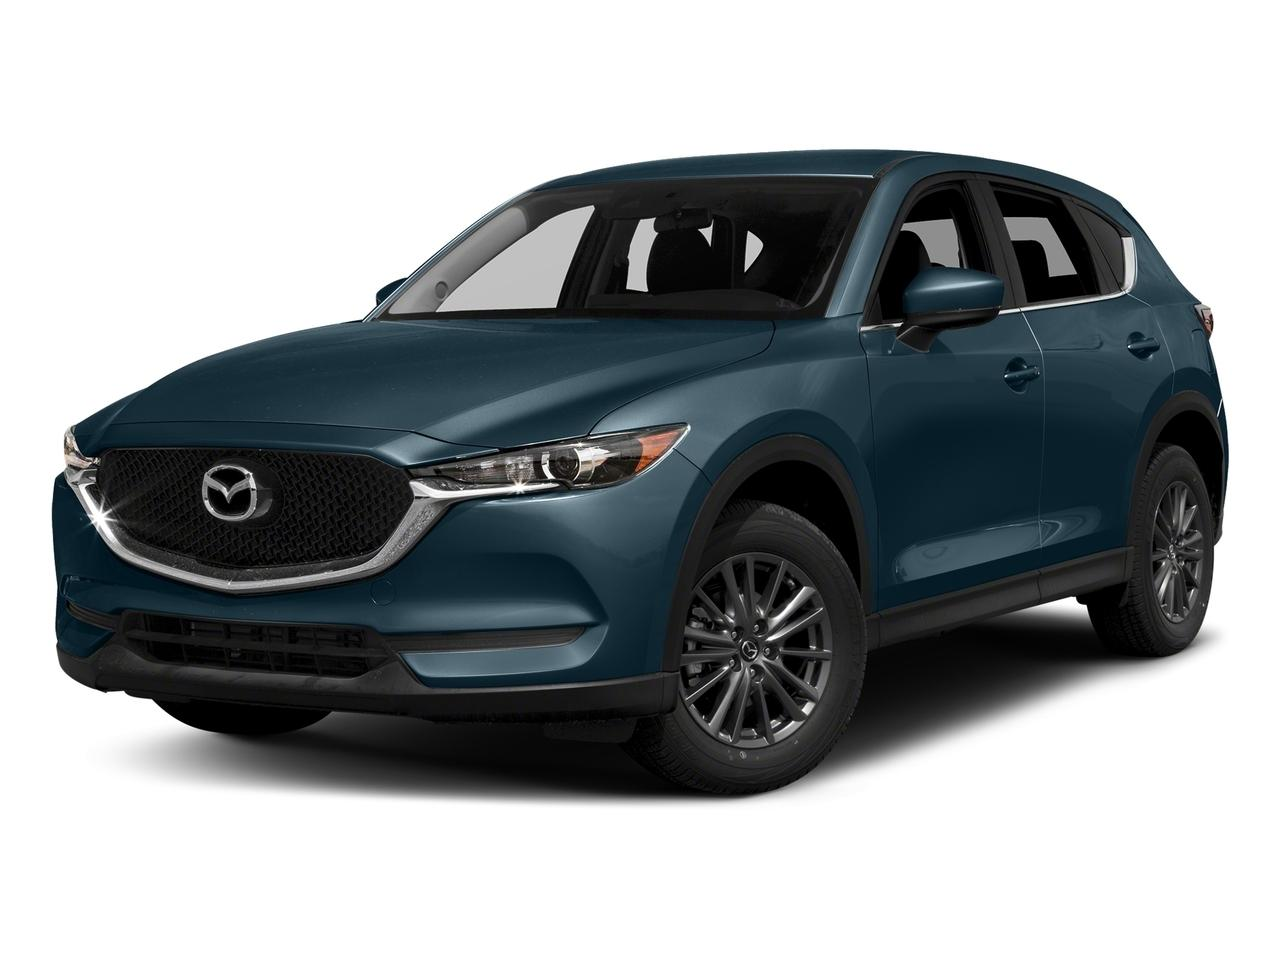 2017 Mazda CX-5 Vehicle Photo in West Chester, PA 19382